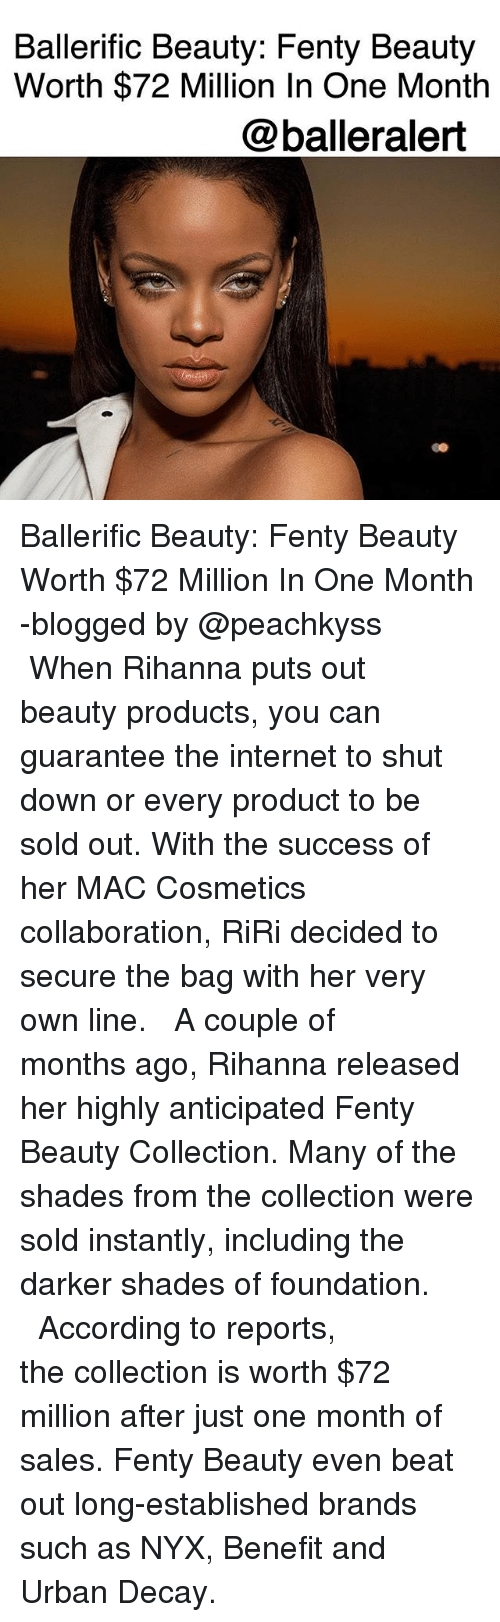 Internet, Memes, and Rihanna: Ballerific Beauty: Fenty Beauty  Worth $72 Million In One Month  @balleralert  Co Ballerific Beauty: Fenty Beauty Worth $72 Million In One Month -blogged by @peachkyss ⠀⠀⠀⠀⠀⠀⠀ ⠀⠀⠀⠀⠀⠀⠀ When Rihanna puts out beauty products, you can guarantee the internet to shut down or every product to be sold out. With the success of her MAC Cosmetics collaboration, RiRi decided to secure the bag with her very own line. ⠀⠀⠀⠀⠀⠀⠀ ⠀⠀⠀⠀⠀⠀⠀ A couple of months ago, Rihanna released her highly anticipated Fenty Beauty Collection. Many of the shades from the collection were sold instantly, including the darker shades of foundation. ⠀⠀⠀⠀⠀⠀⠀ ⠀⠀⠀⠀⠀⠀⠀ According to reports, the collection is worth $72 million after just one month of sales. Fenty Beauty even beat out long-established brands such as NYX, Benefit and Urban Decay.